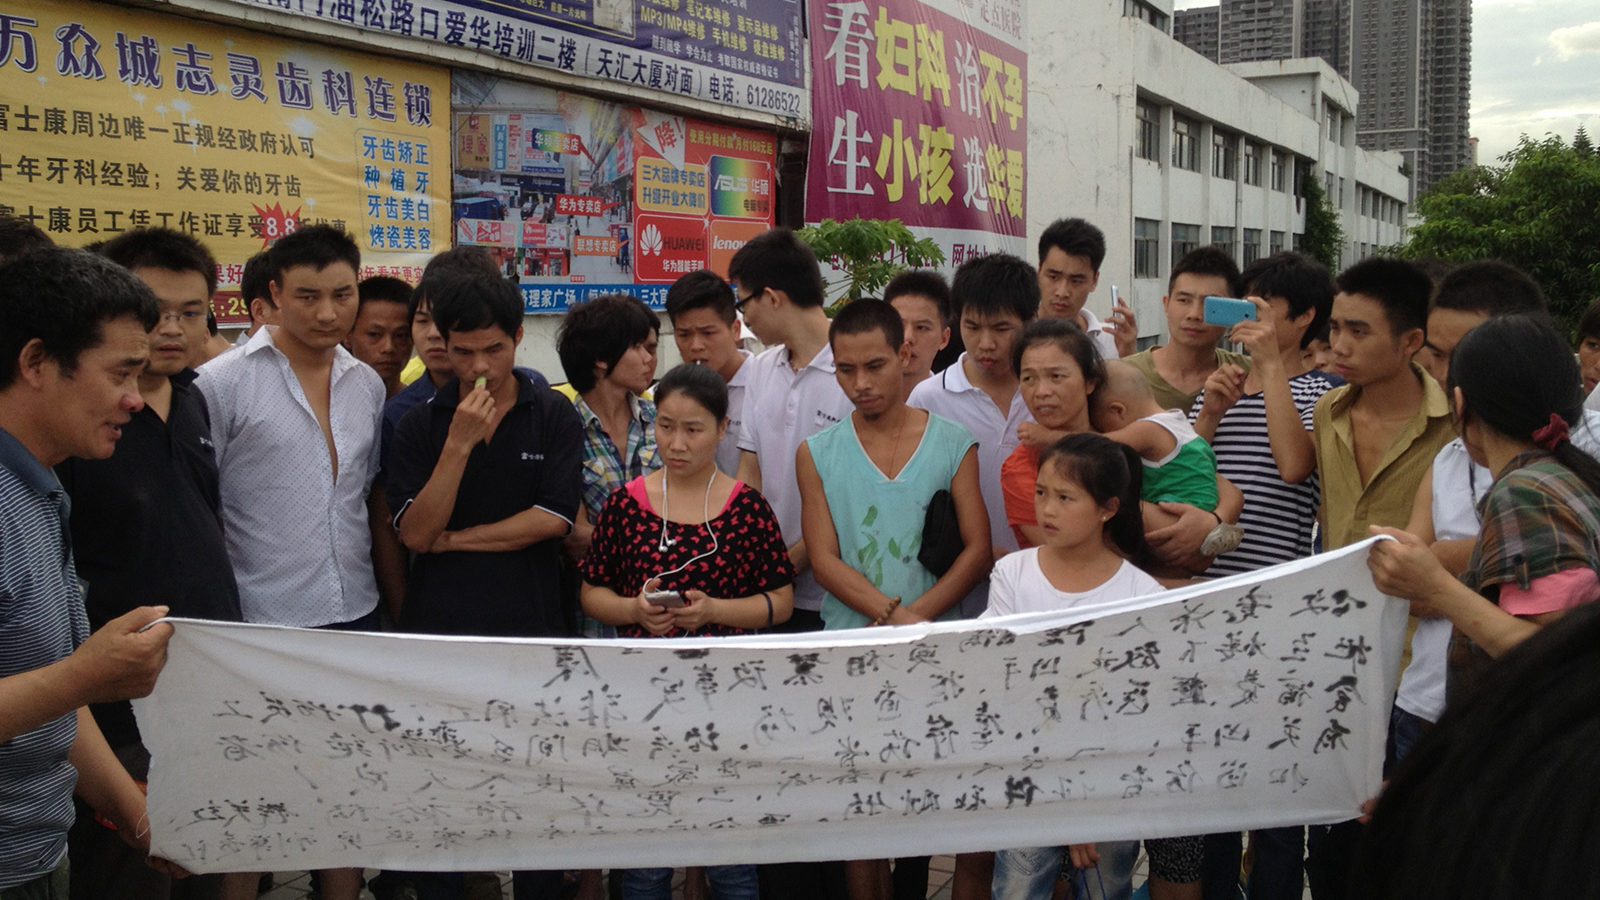 Protest in China